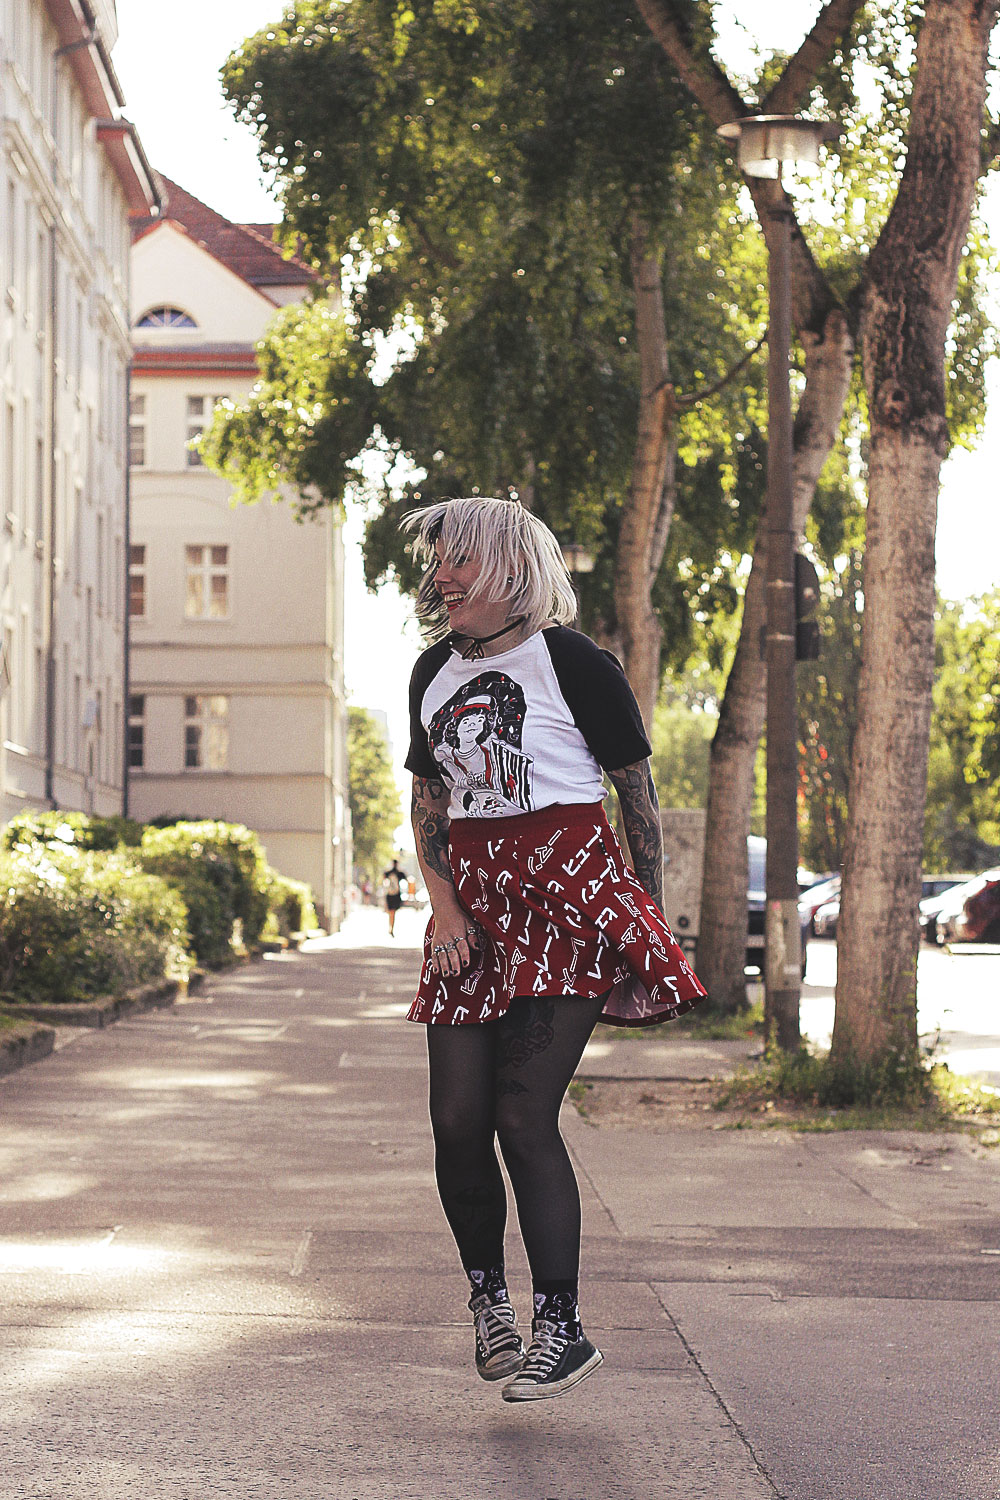 choker, adidas, pharell williams, killstar, harajuku ghost, converse, alexandra cook, alxndra, kitsune, collegestyle, college jacke, stranger things, abisso serigrafia, rock, minirock, sommer, alternative, alternative fashion, alternative girl, alternative mode, altgirl, berlin, berlin fashion, berlin fashion blogger, berlin mode, berlin streetstyle, blogger, fashion blogger, girls with piercings, girls with tattoos, grunge, grunge fashion, grunge mode, mode, Punk, punk fashion, punk mode, punkgirl, punkmädchen, scenehair, snakebites, split hair, splithair, tattoomädchen, tattoomodel